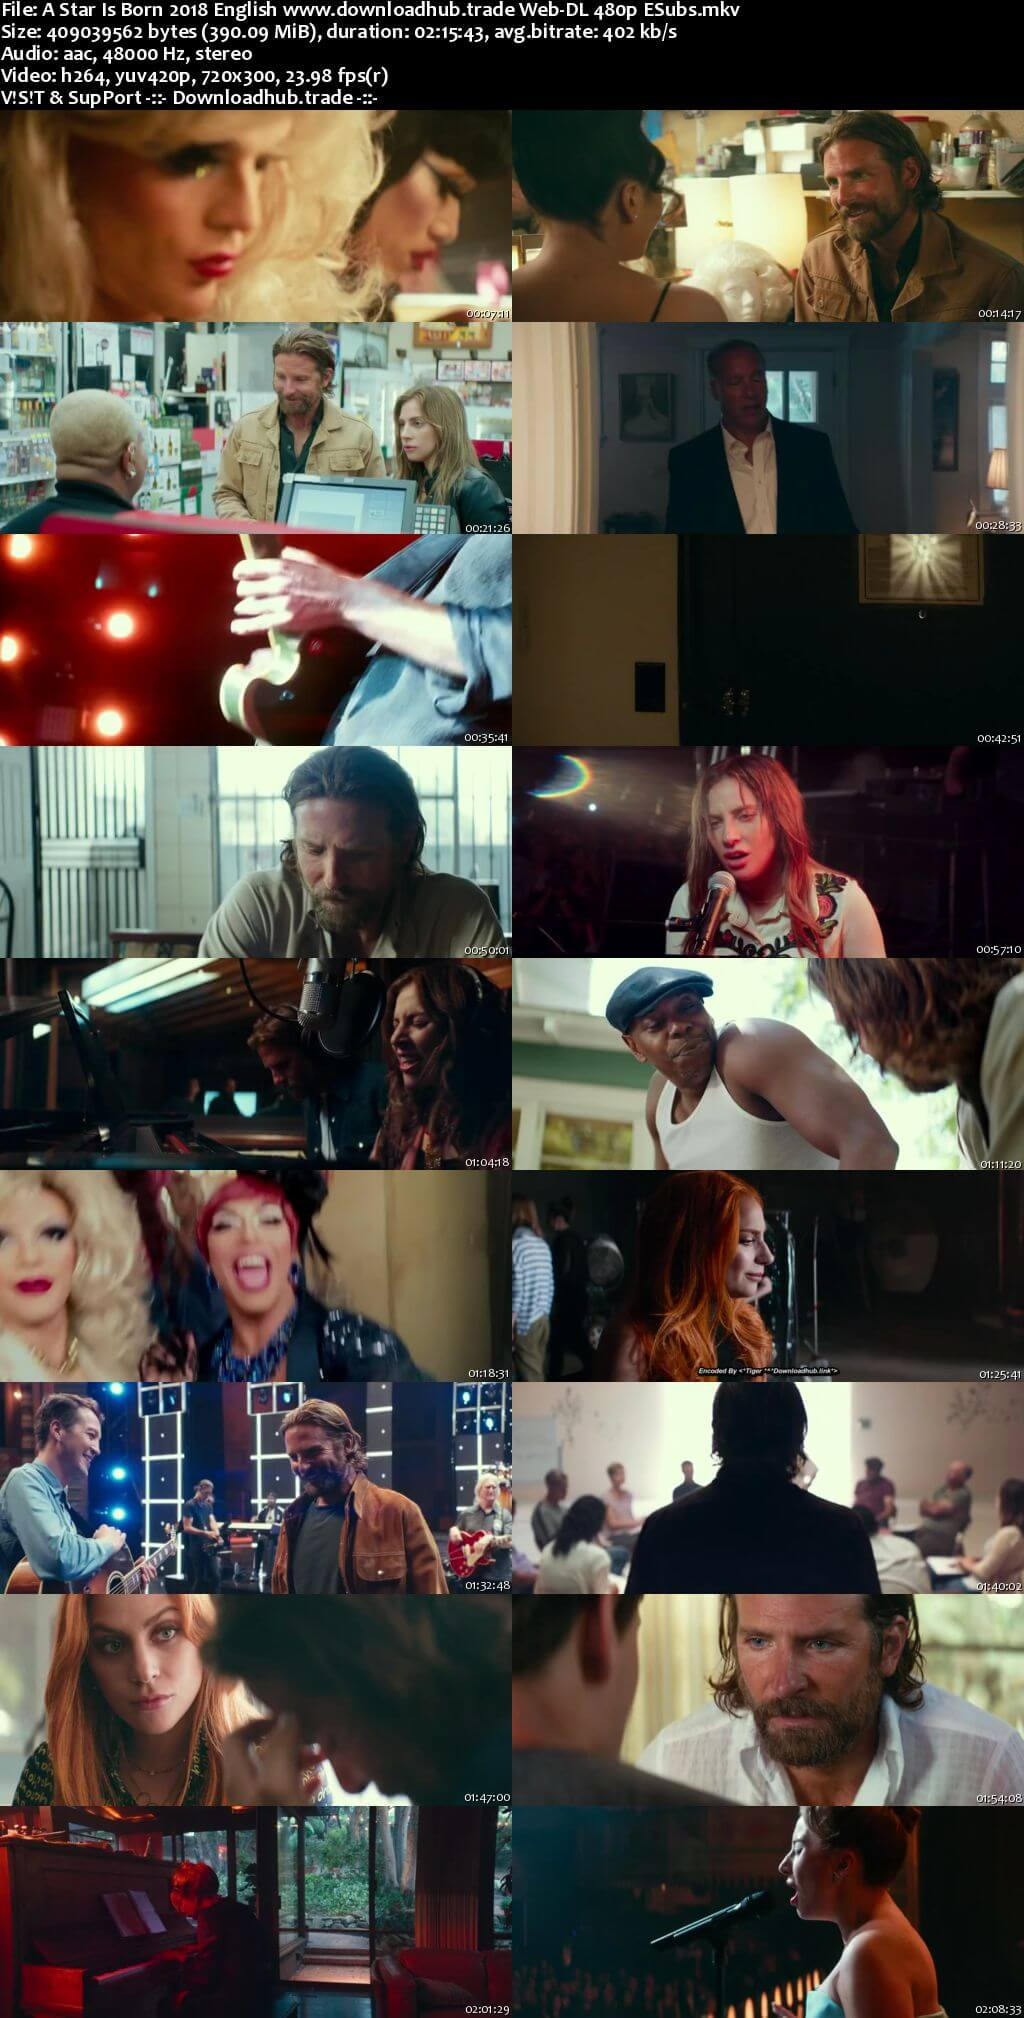 A Star Is Born 2018 English 350MB Web-DL 480p ESubs